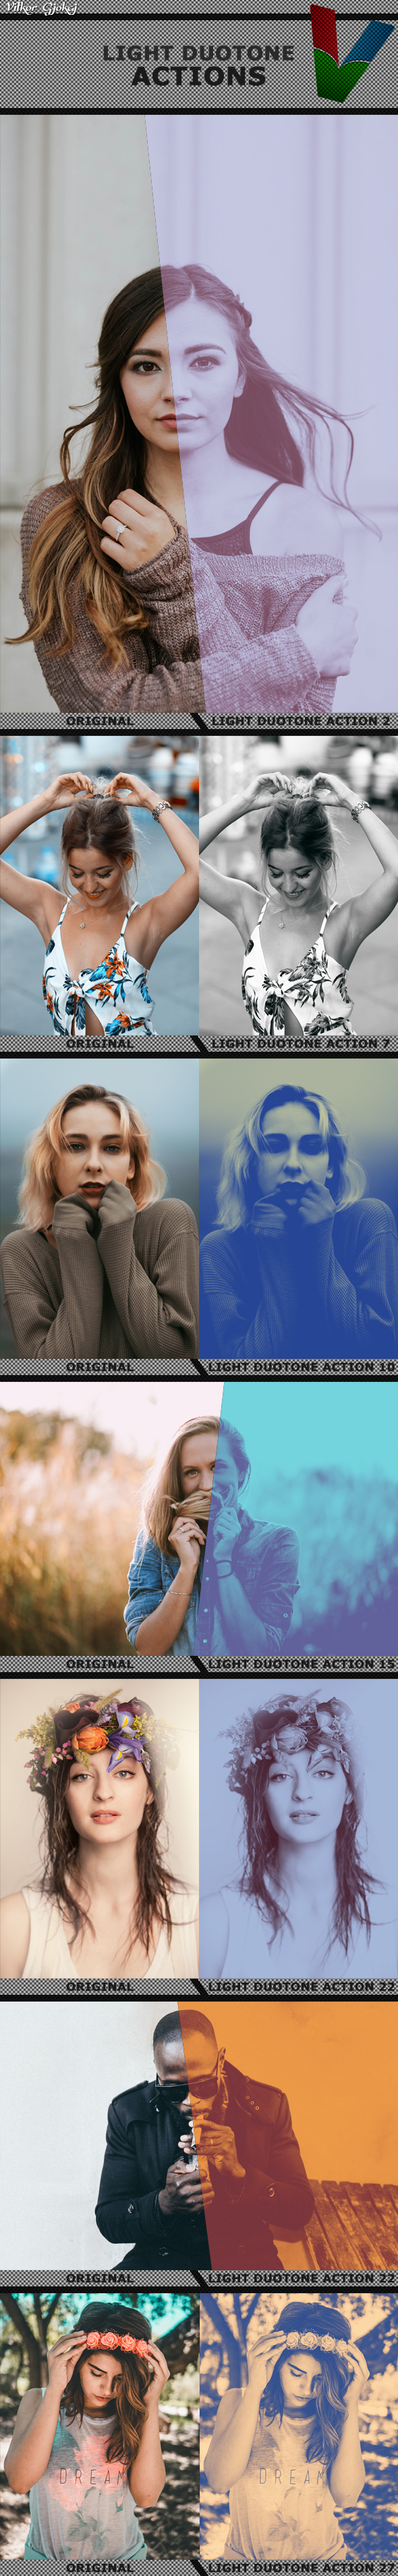 Duotone Actions - Photo Effects Actions